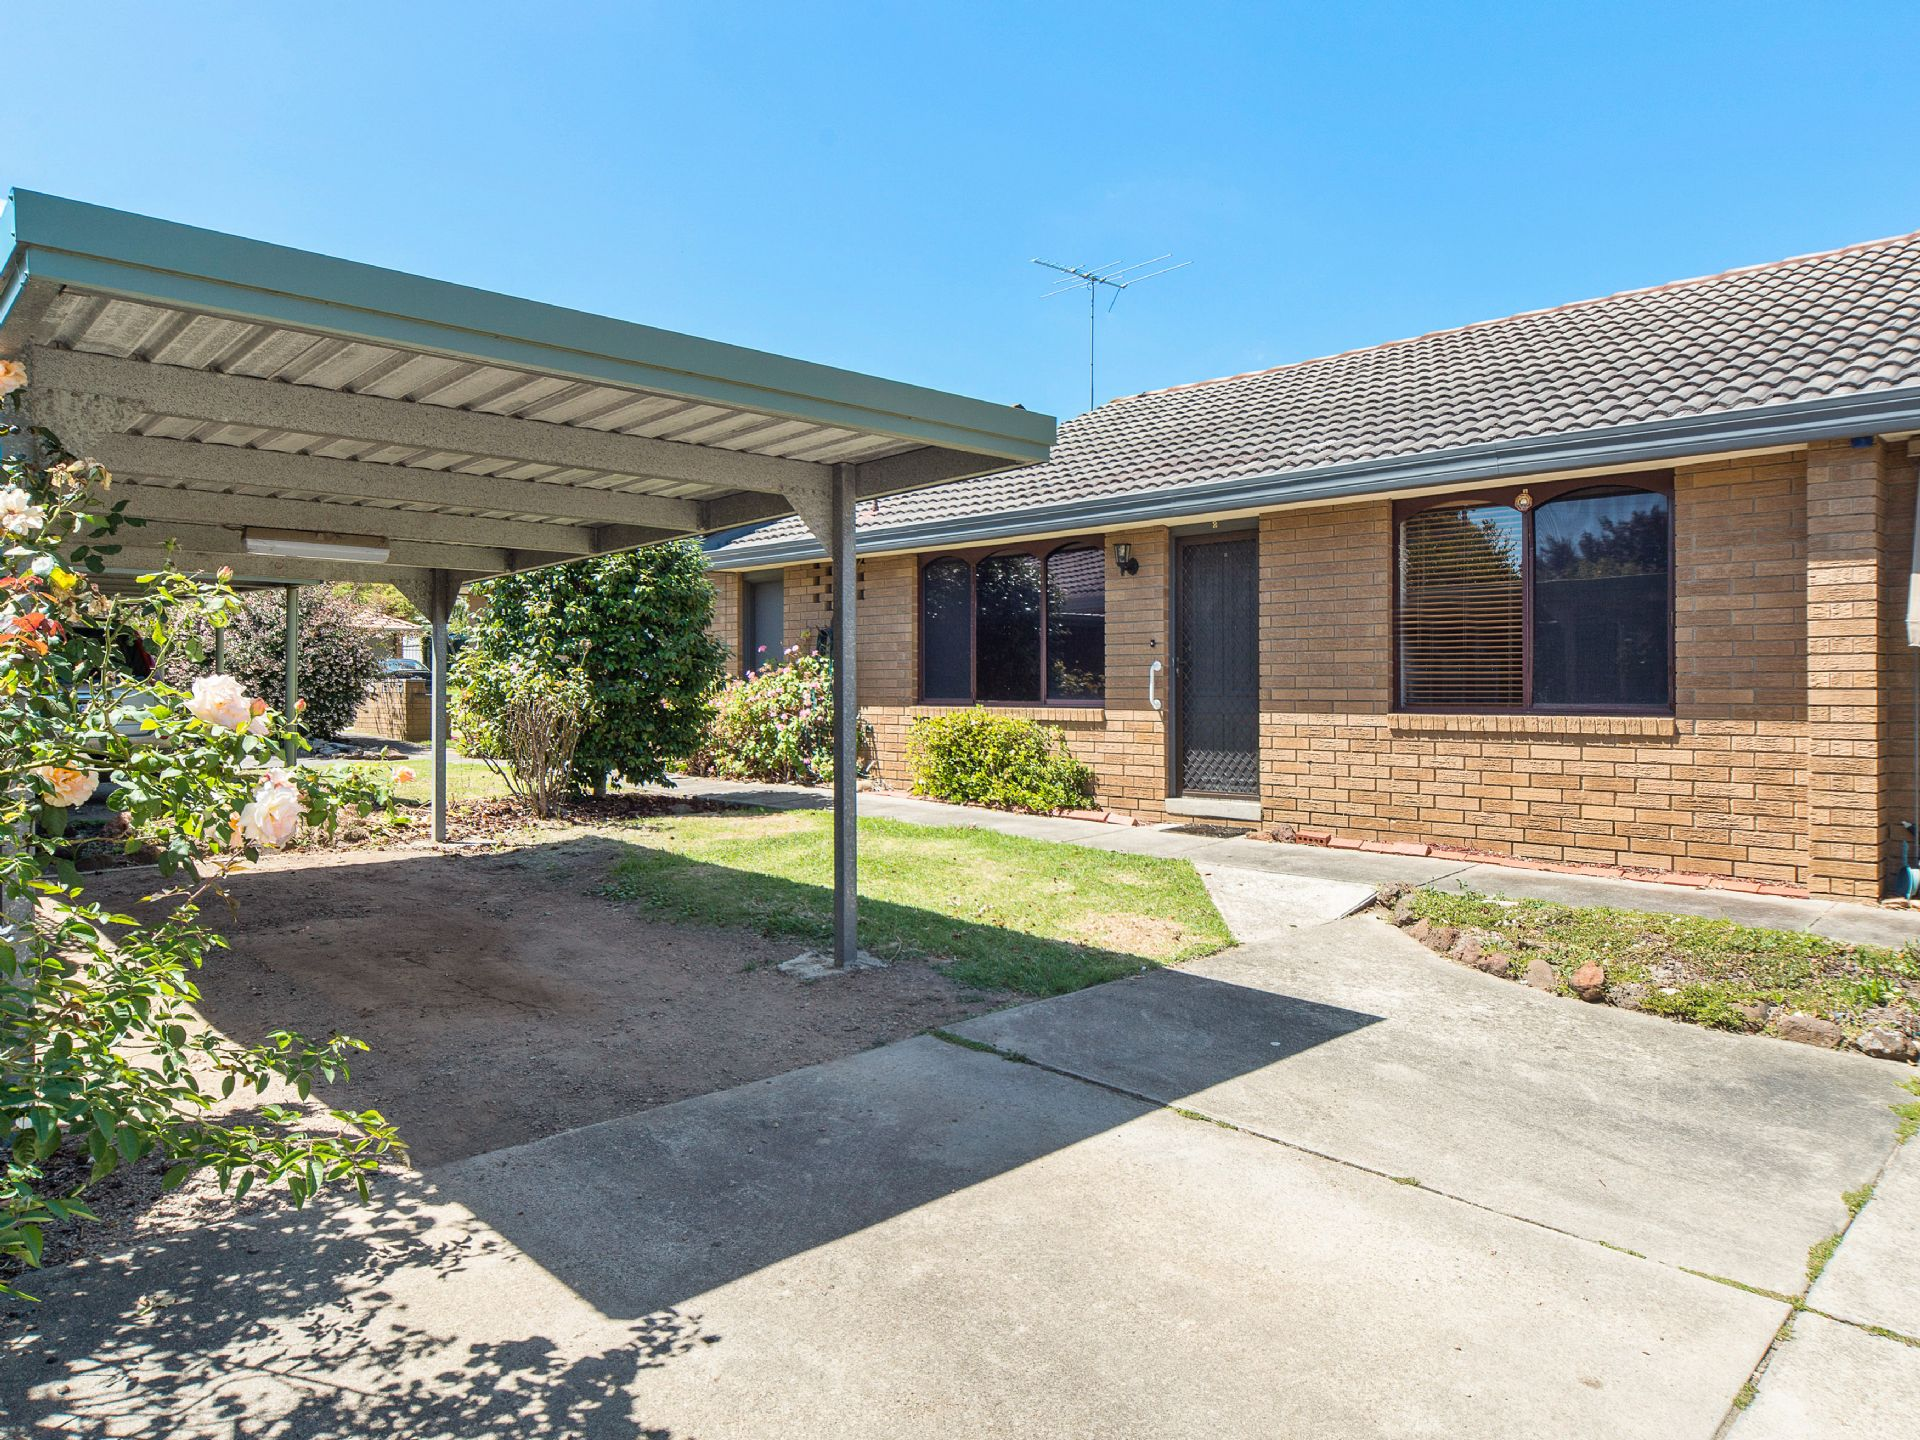 2/8 Government Road, FRANKSTON, VIC, 3199 - Image